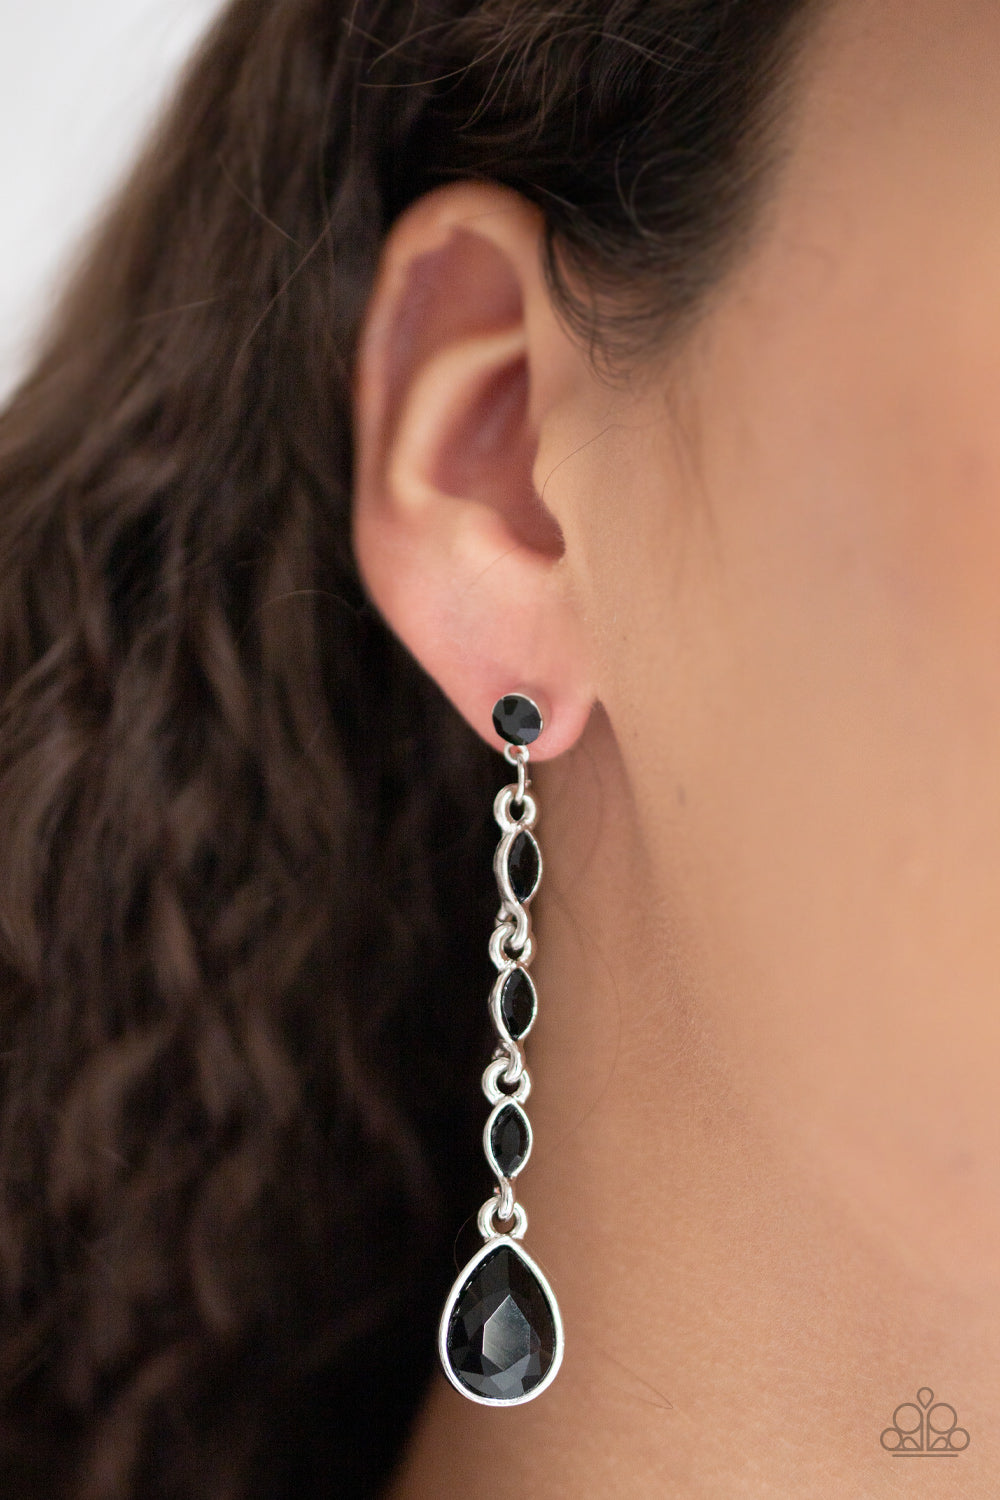 Paparazzi Jewelry & Accessories - Must Love Diamonds - Black Earrings. Bling By Titia Boutique